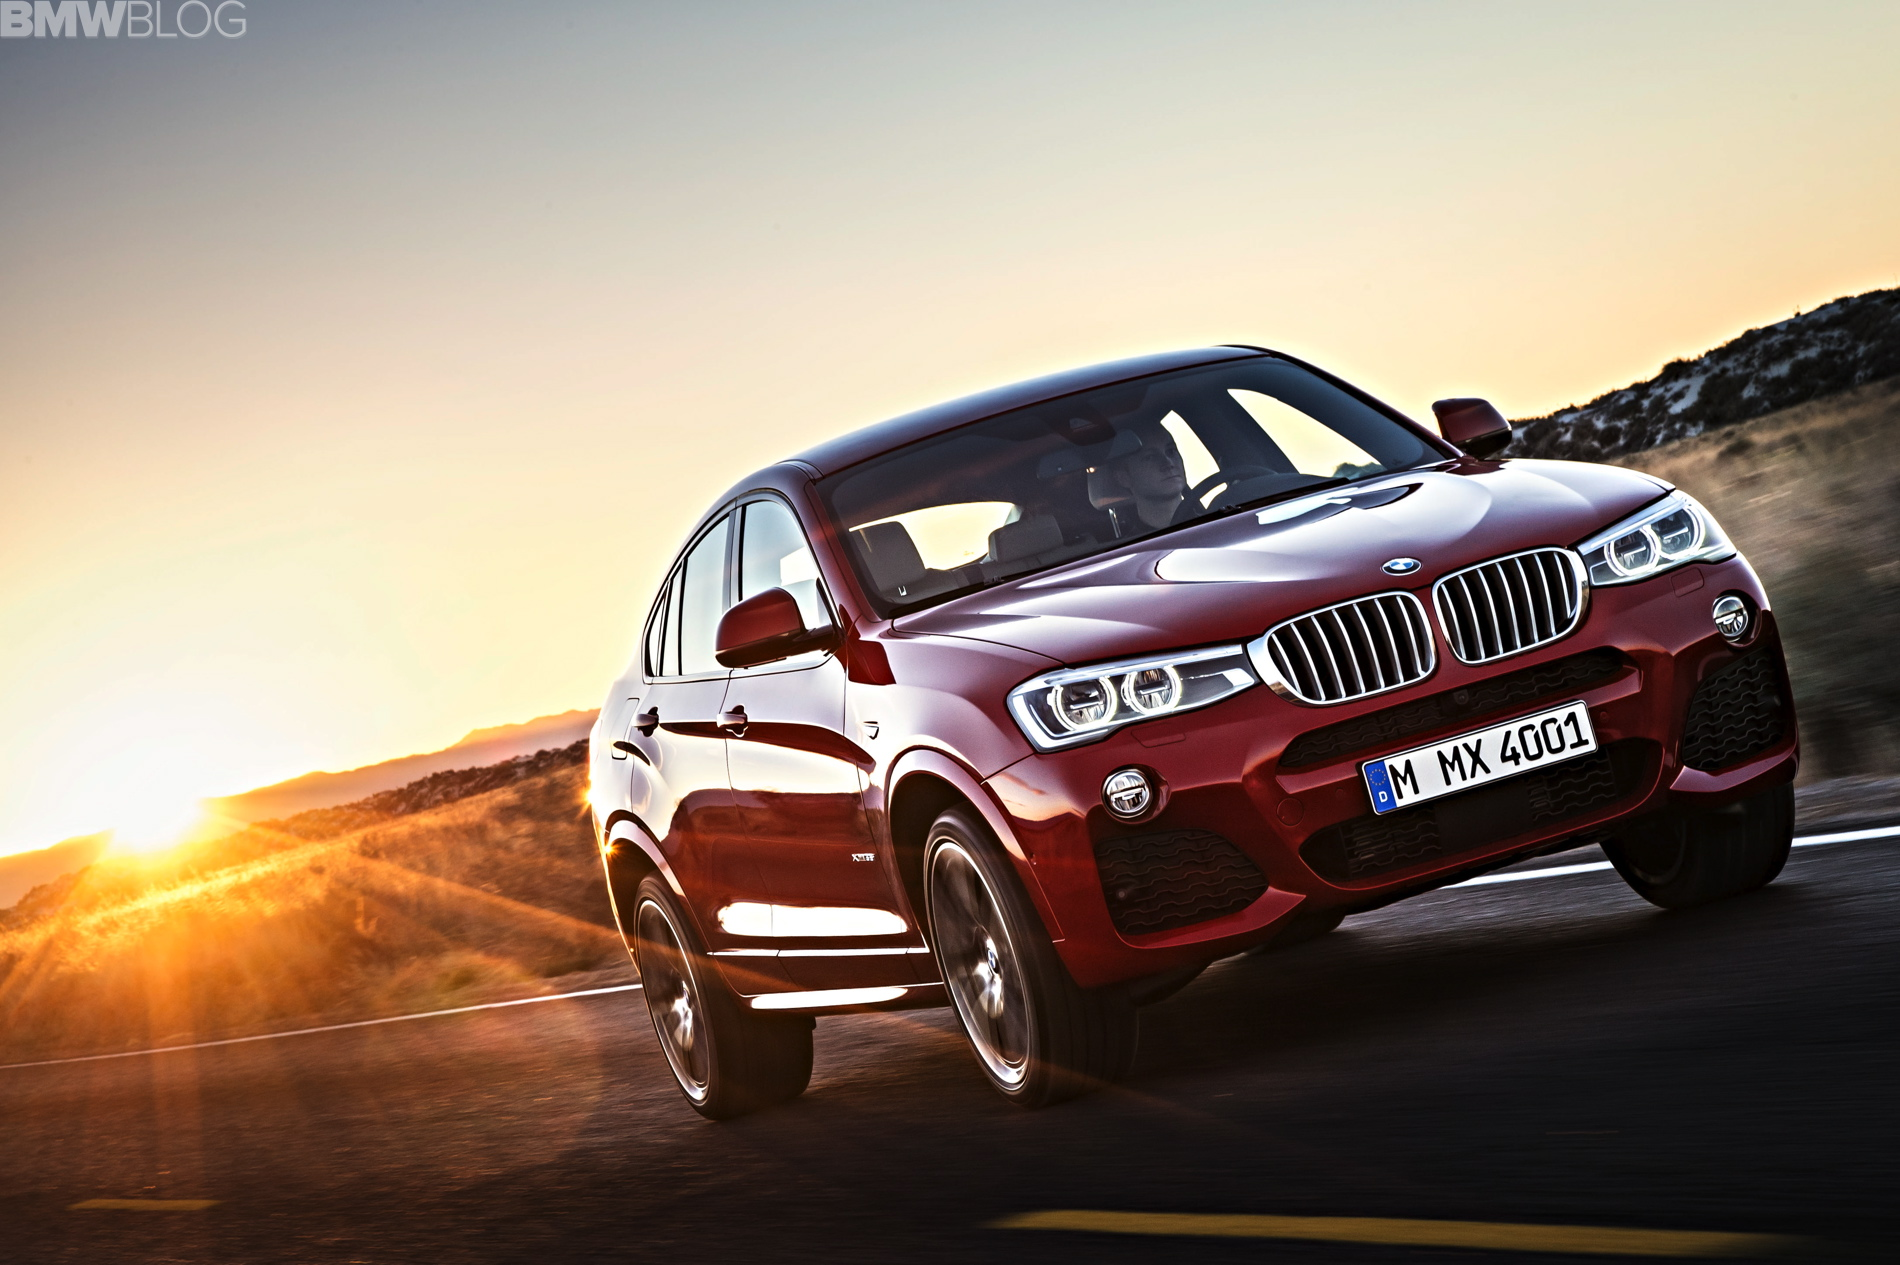 new bmw x4 images 23